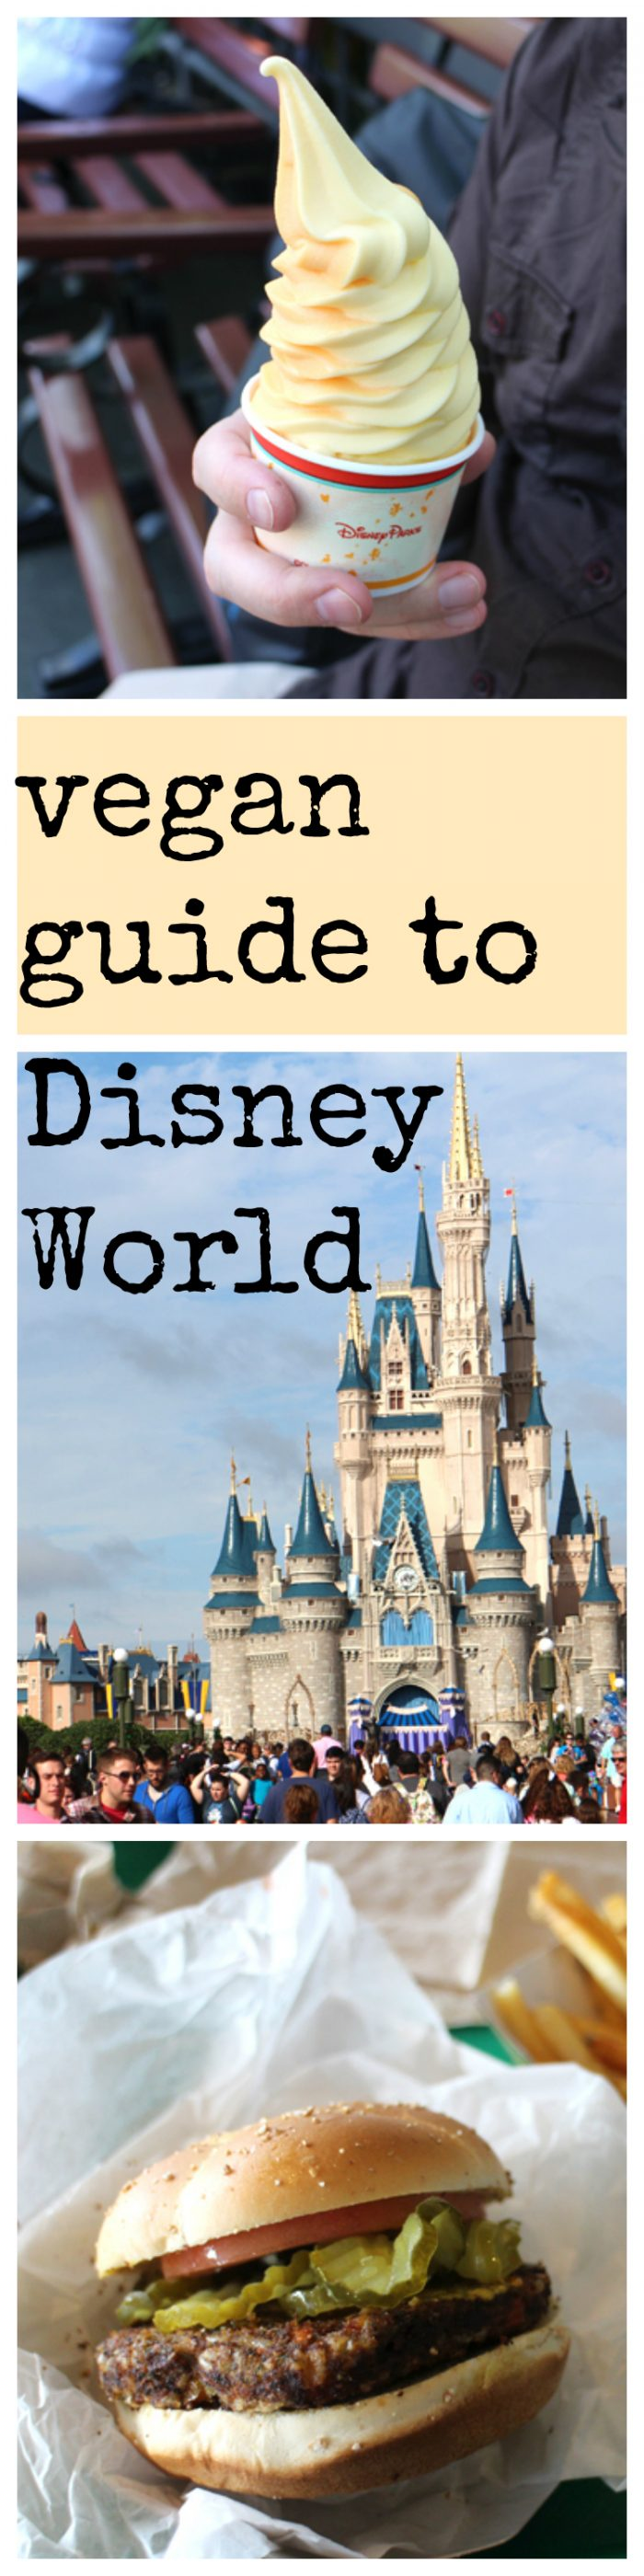 Planning a trip to Disney World? Here's a guide to make finding vegan fare a breeze at the Magic Kingdom. | cadryskitchen.com